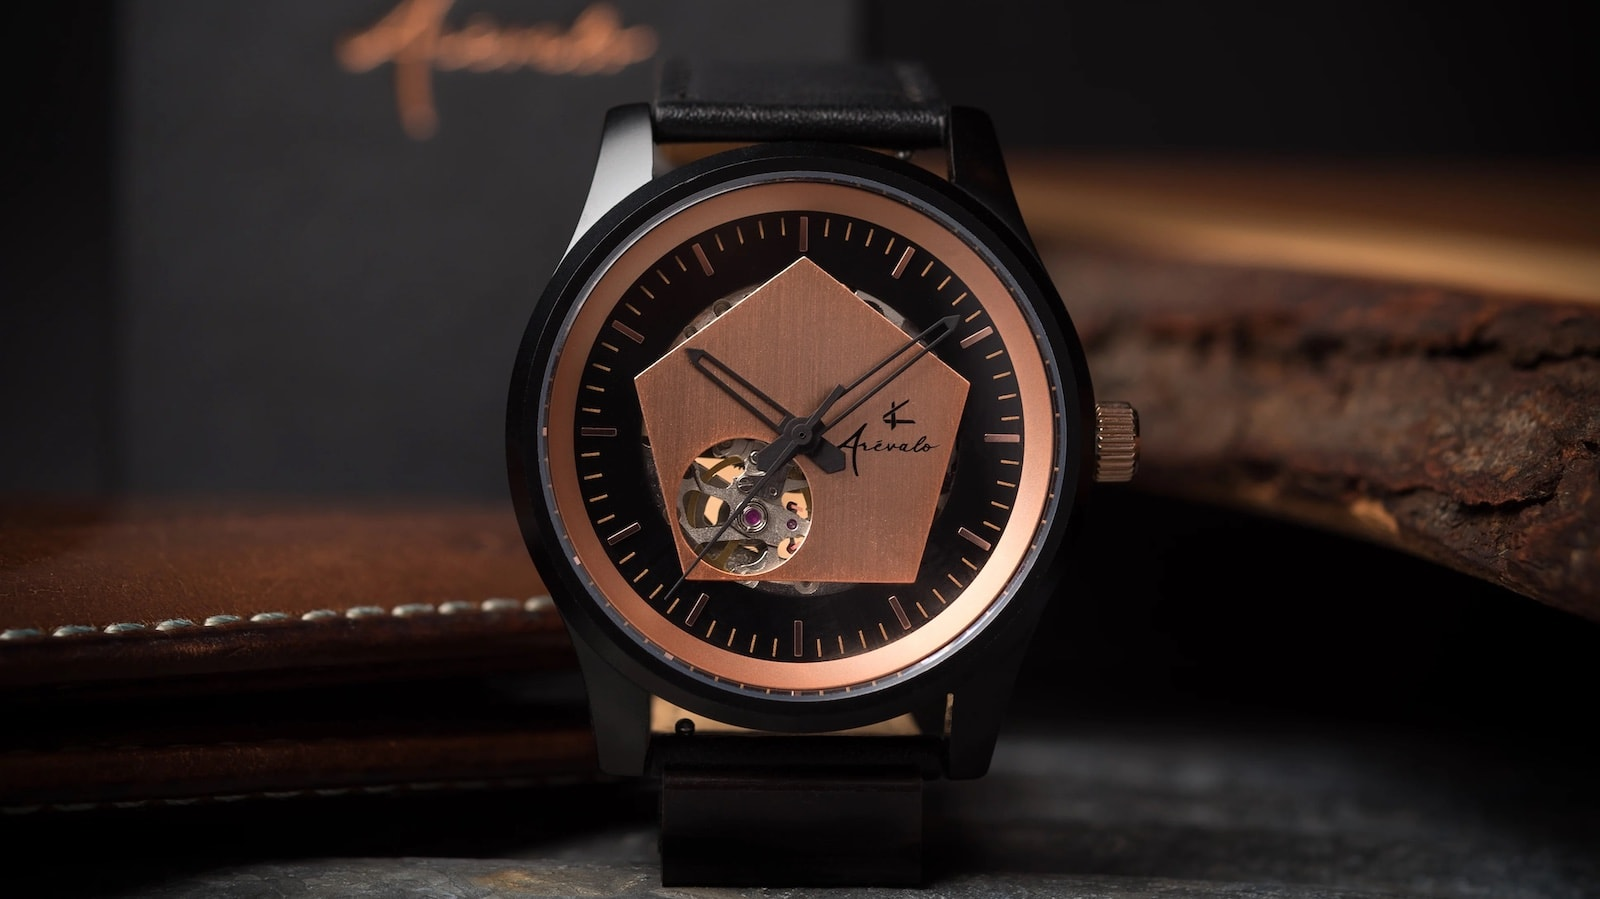 Arévalo Watches Pentagonum subtle timepiece blends black and rose gold